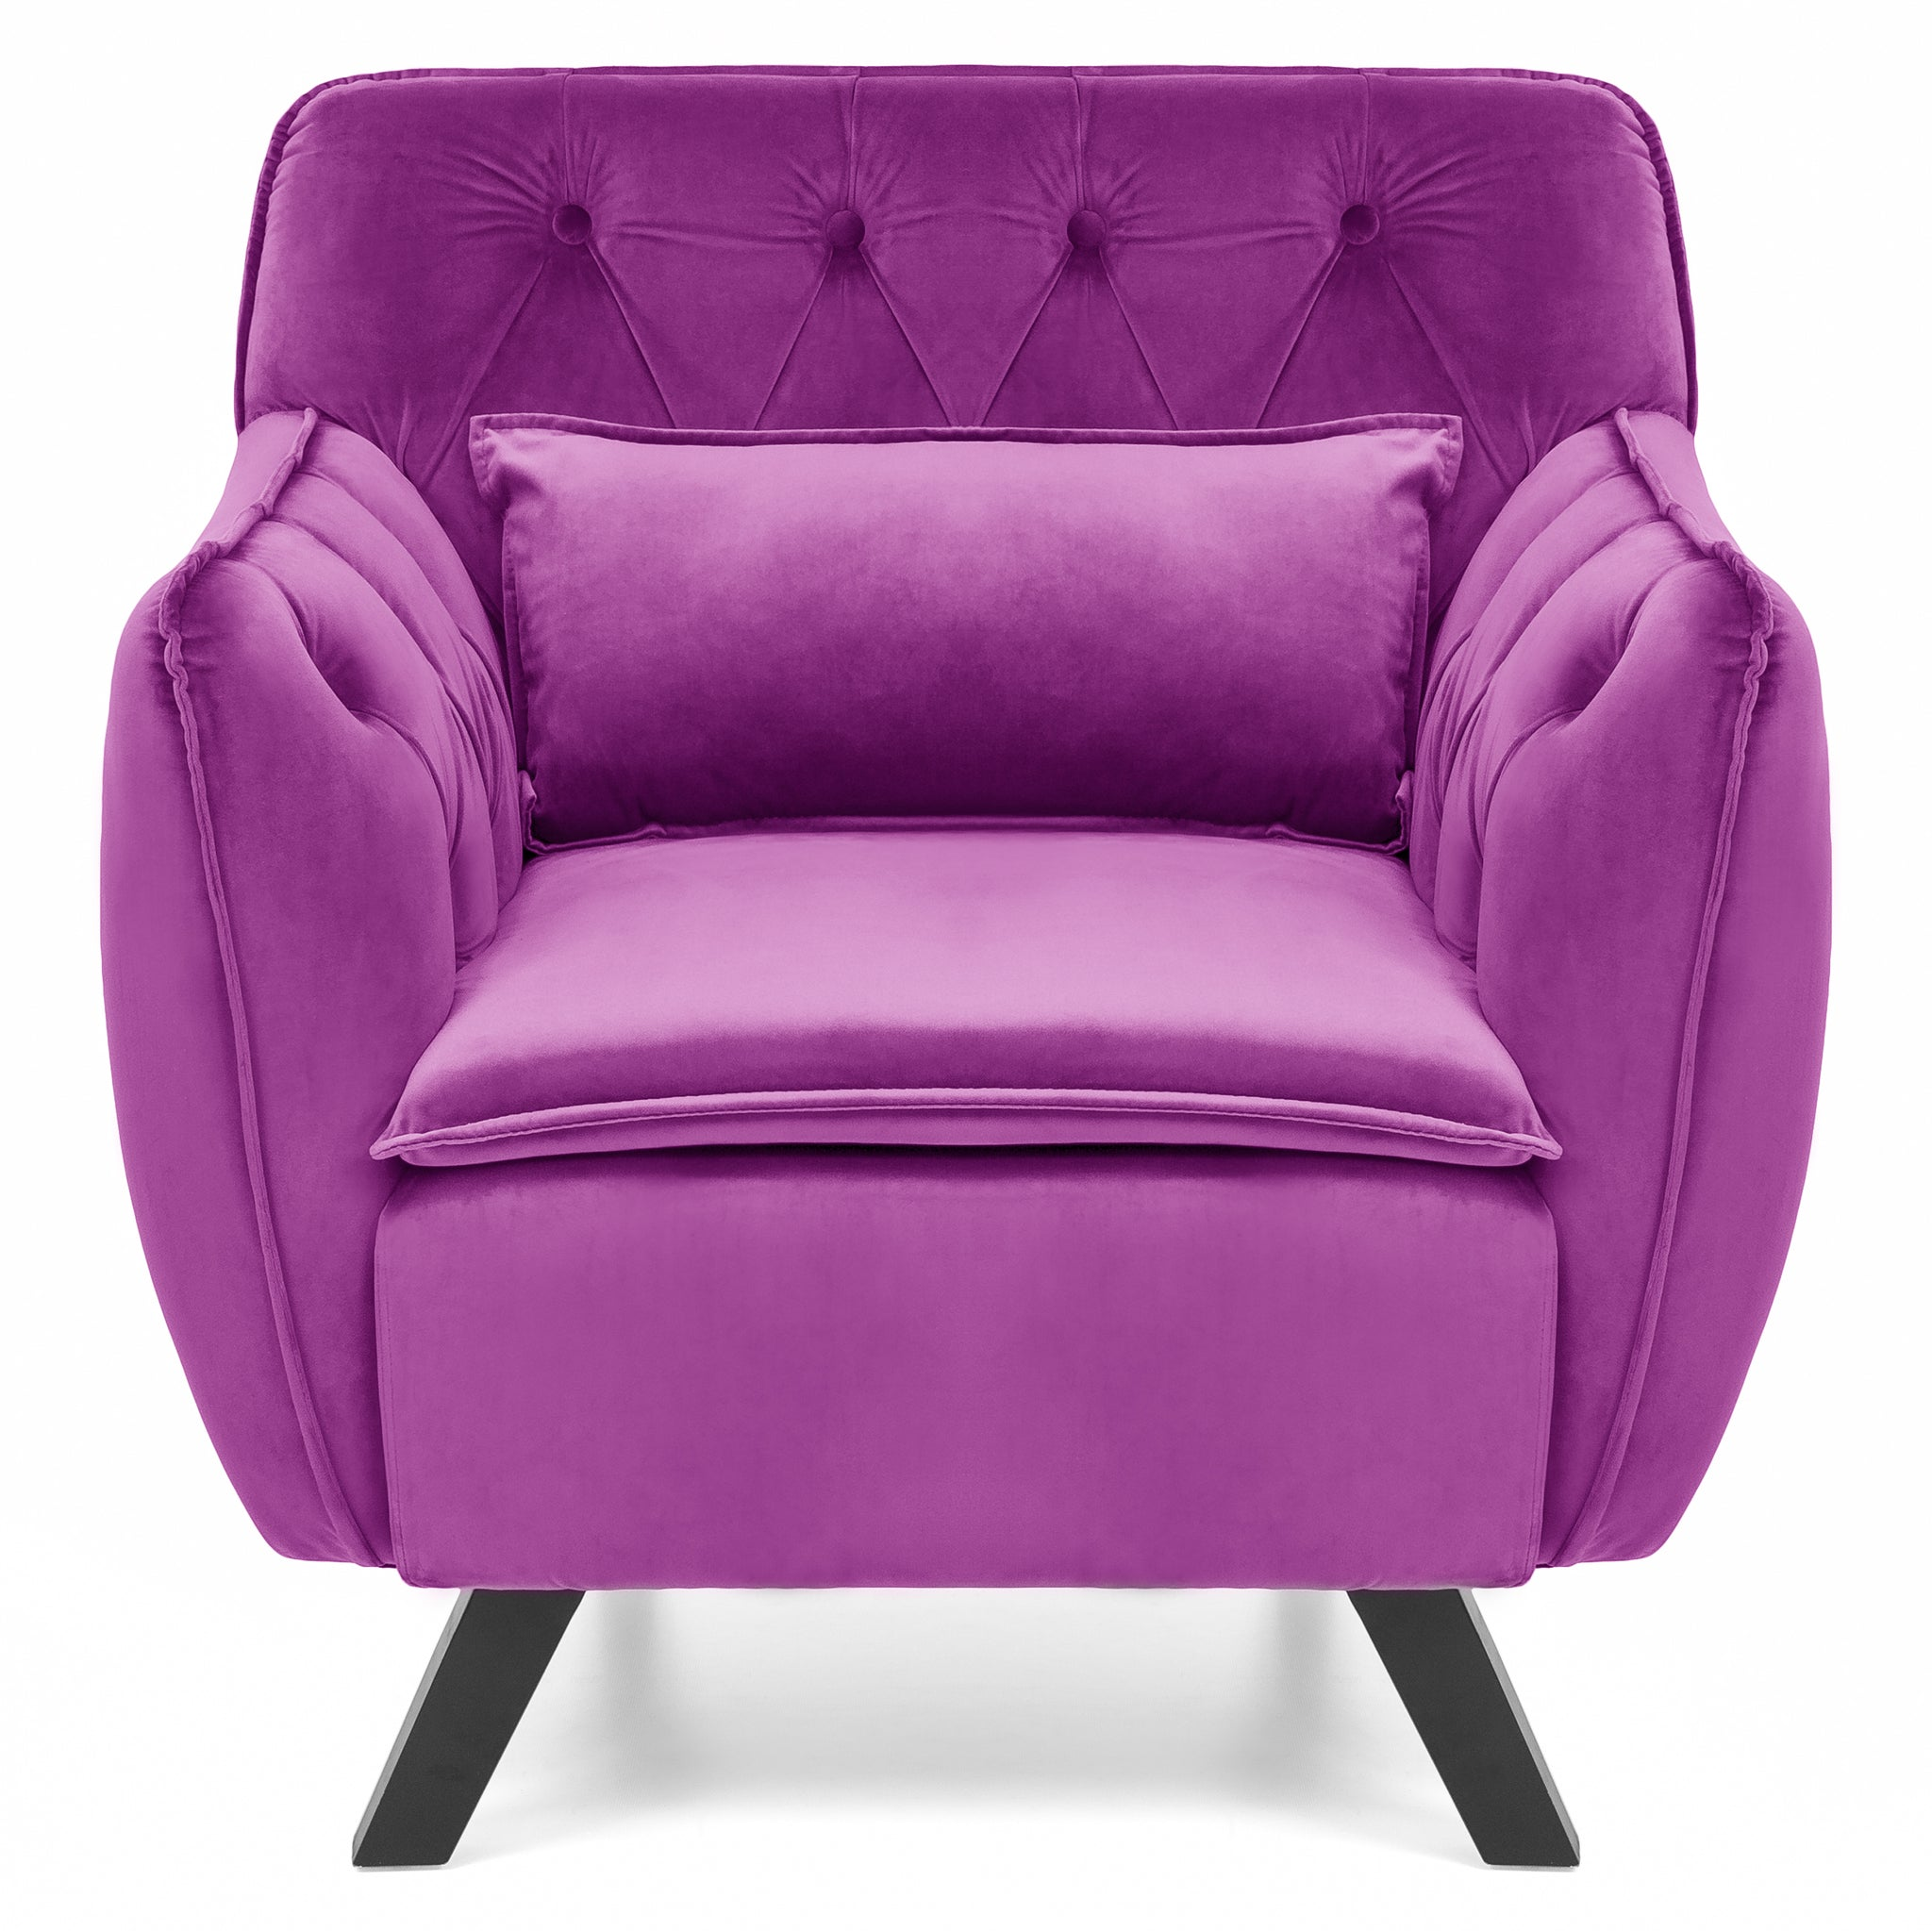 Mid Century Modern Tufted Accent Chair w Lumbar Pillow Purple